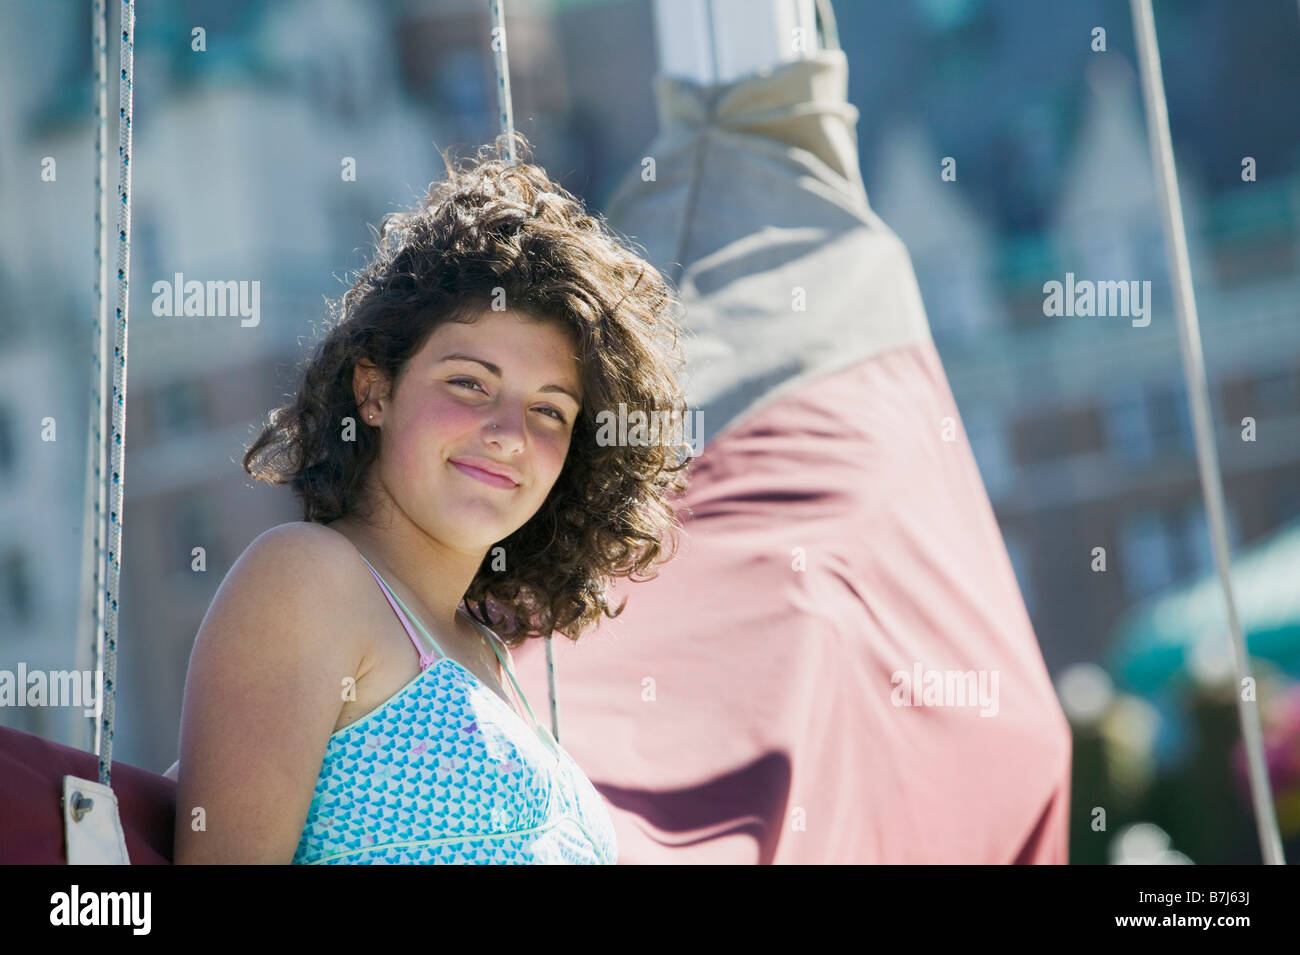 14 Year Old Girl On a Sailboat. Victoria, BC. - Stock Image